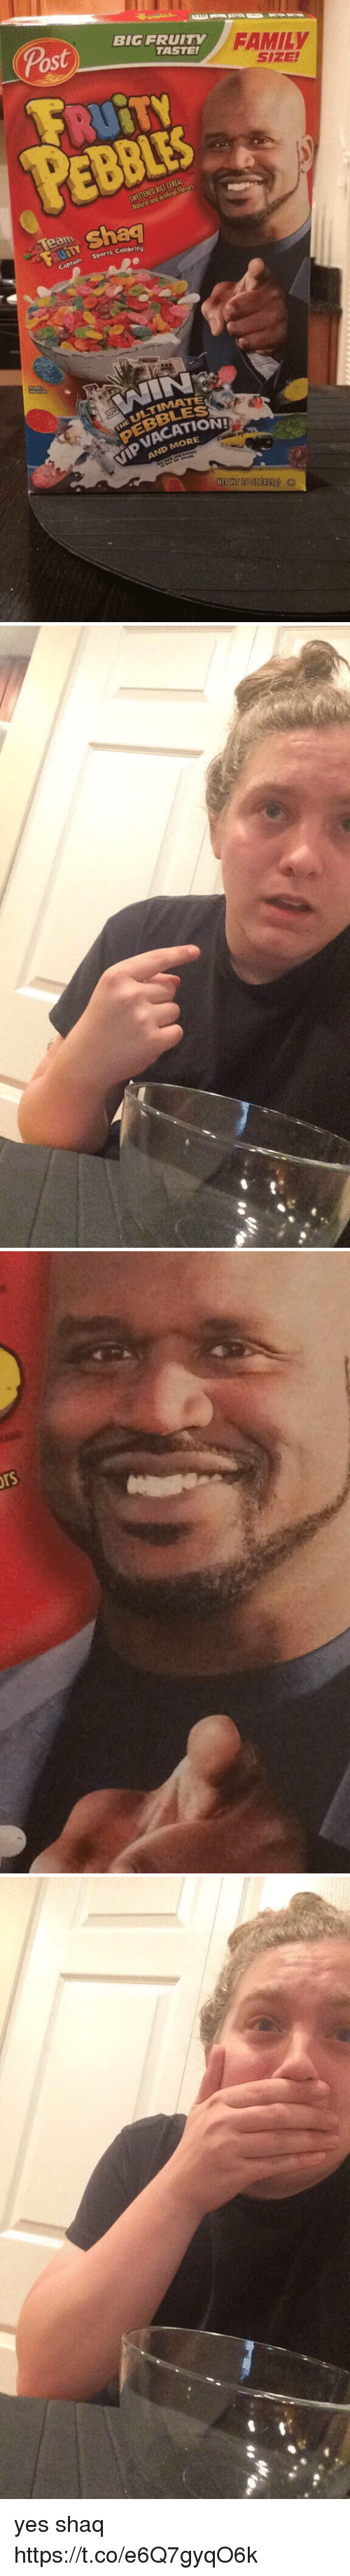 Family, Memes, and Shaq: BIG FRUITY  TASTE!  Post  CEREAL  RICE SWEETENED Team  Sports Celebri  Captain MORE  AND FAMILY  SIZE!   Drs yes shaq https://t.co/e6Q7gyqO6k